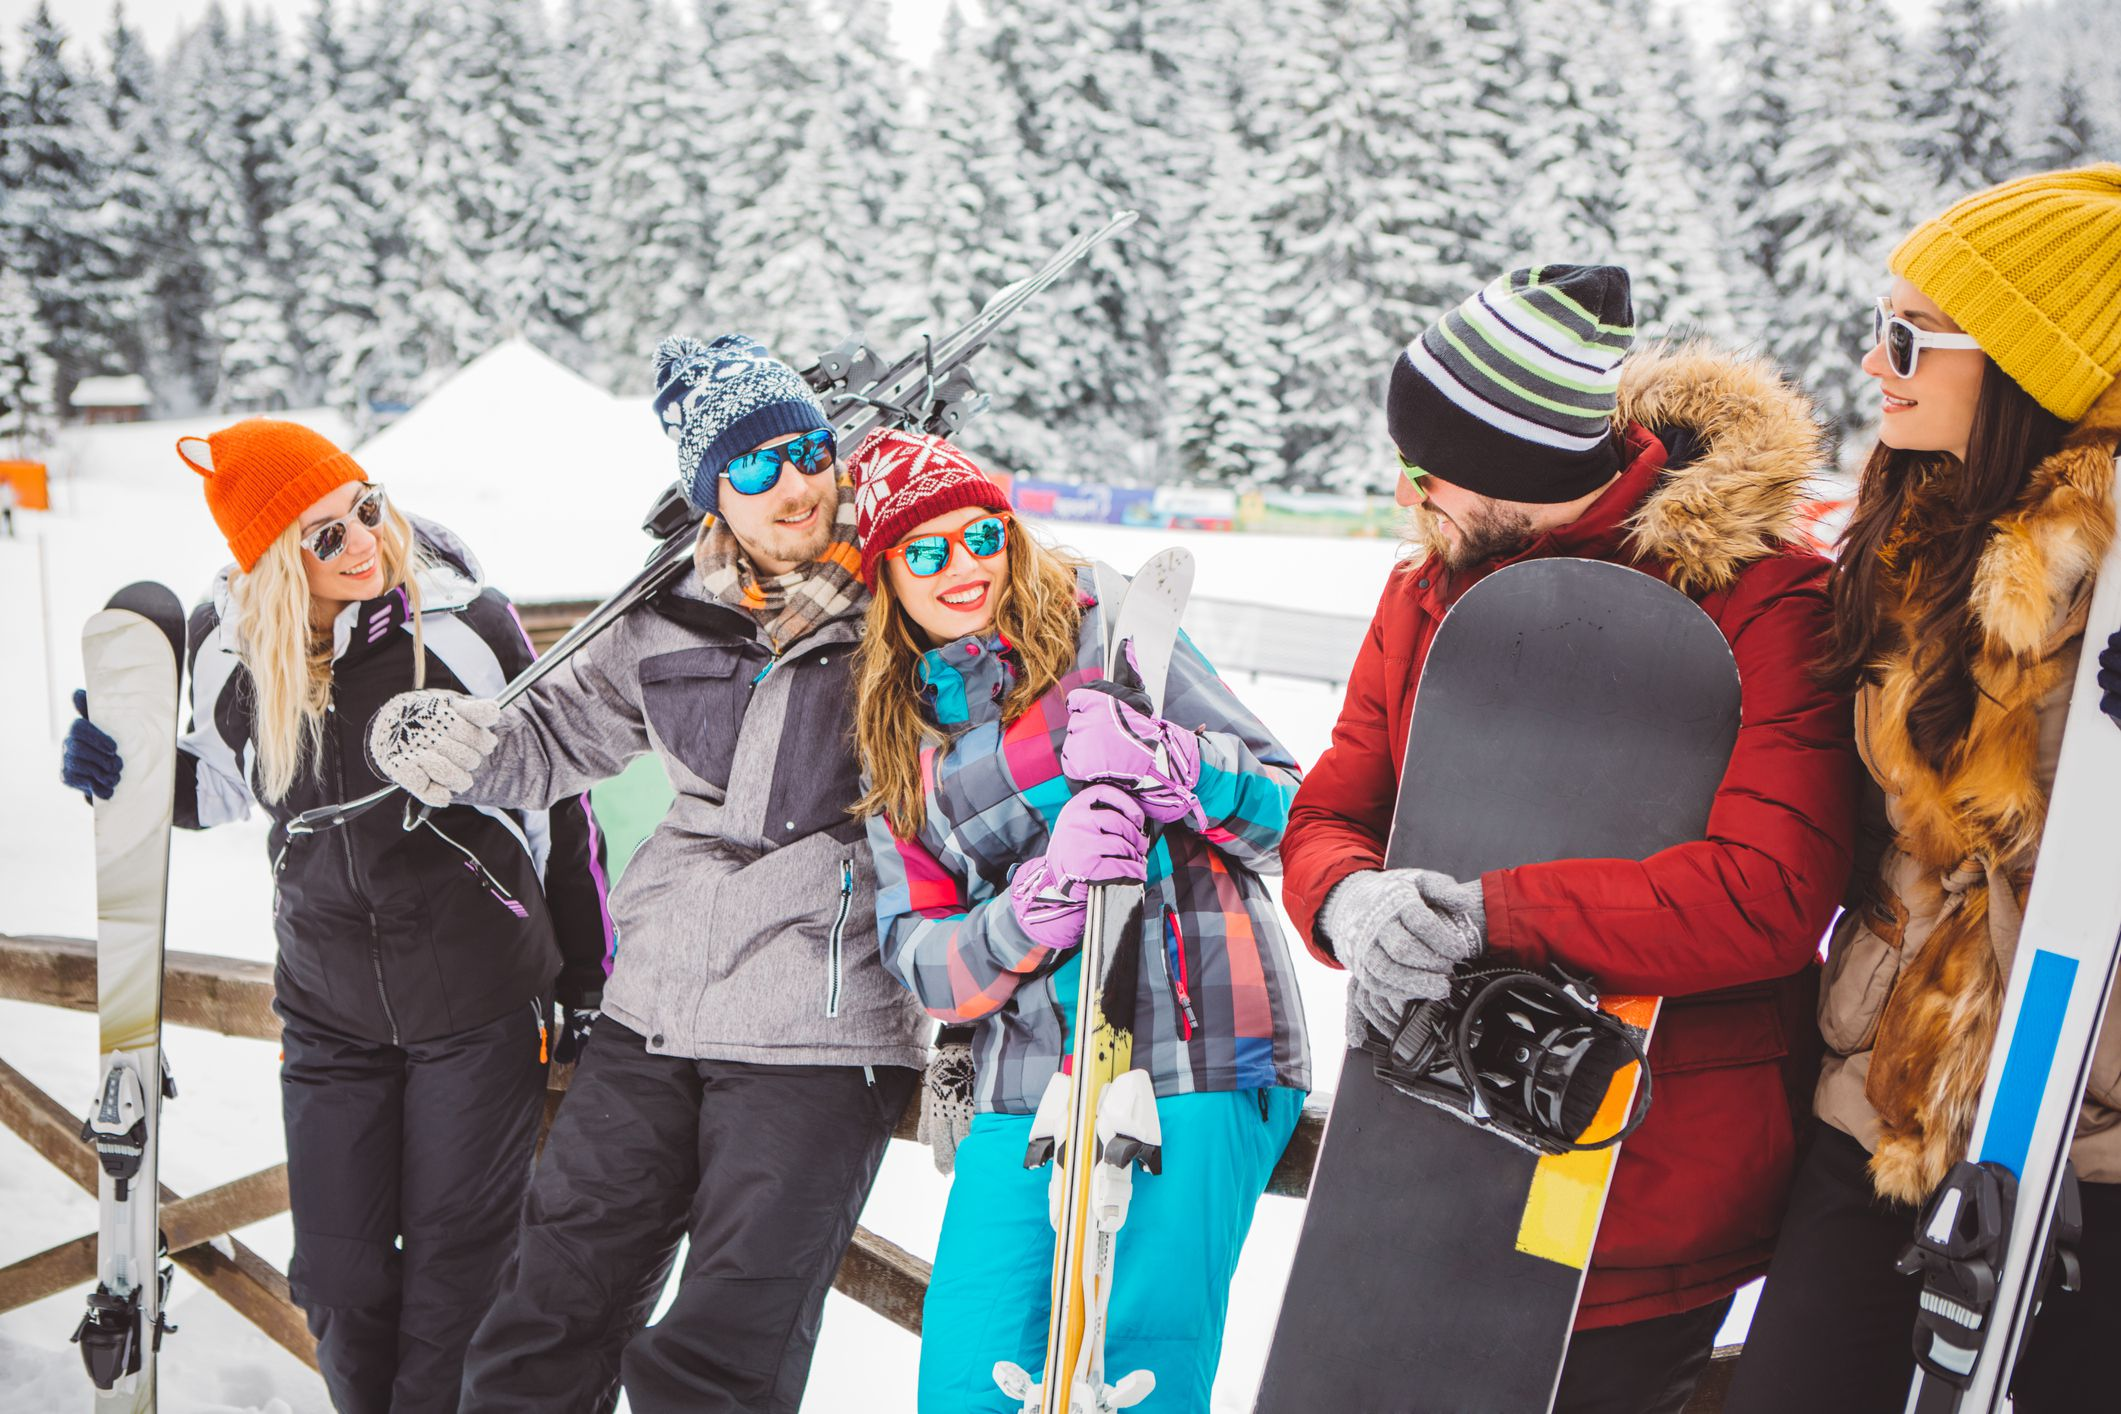 The Top Ski Resorts For Singles - The top 10 destinations for your snowboarding vacation